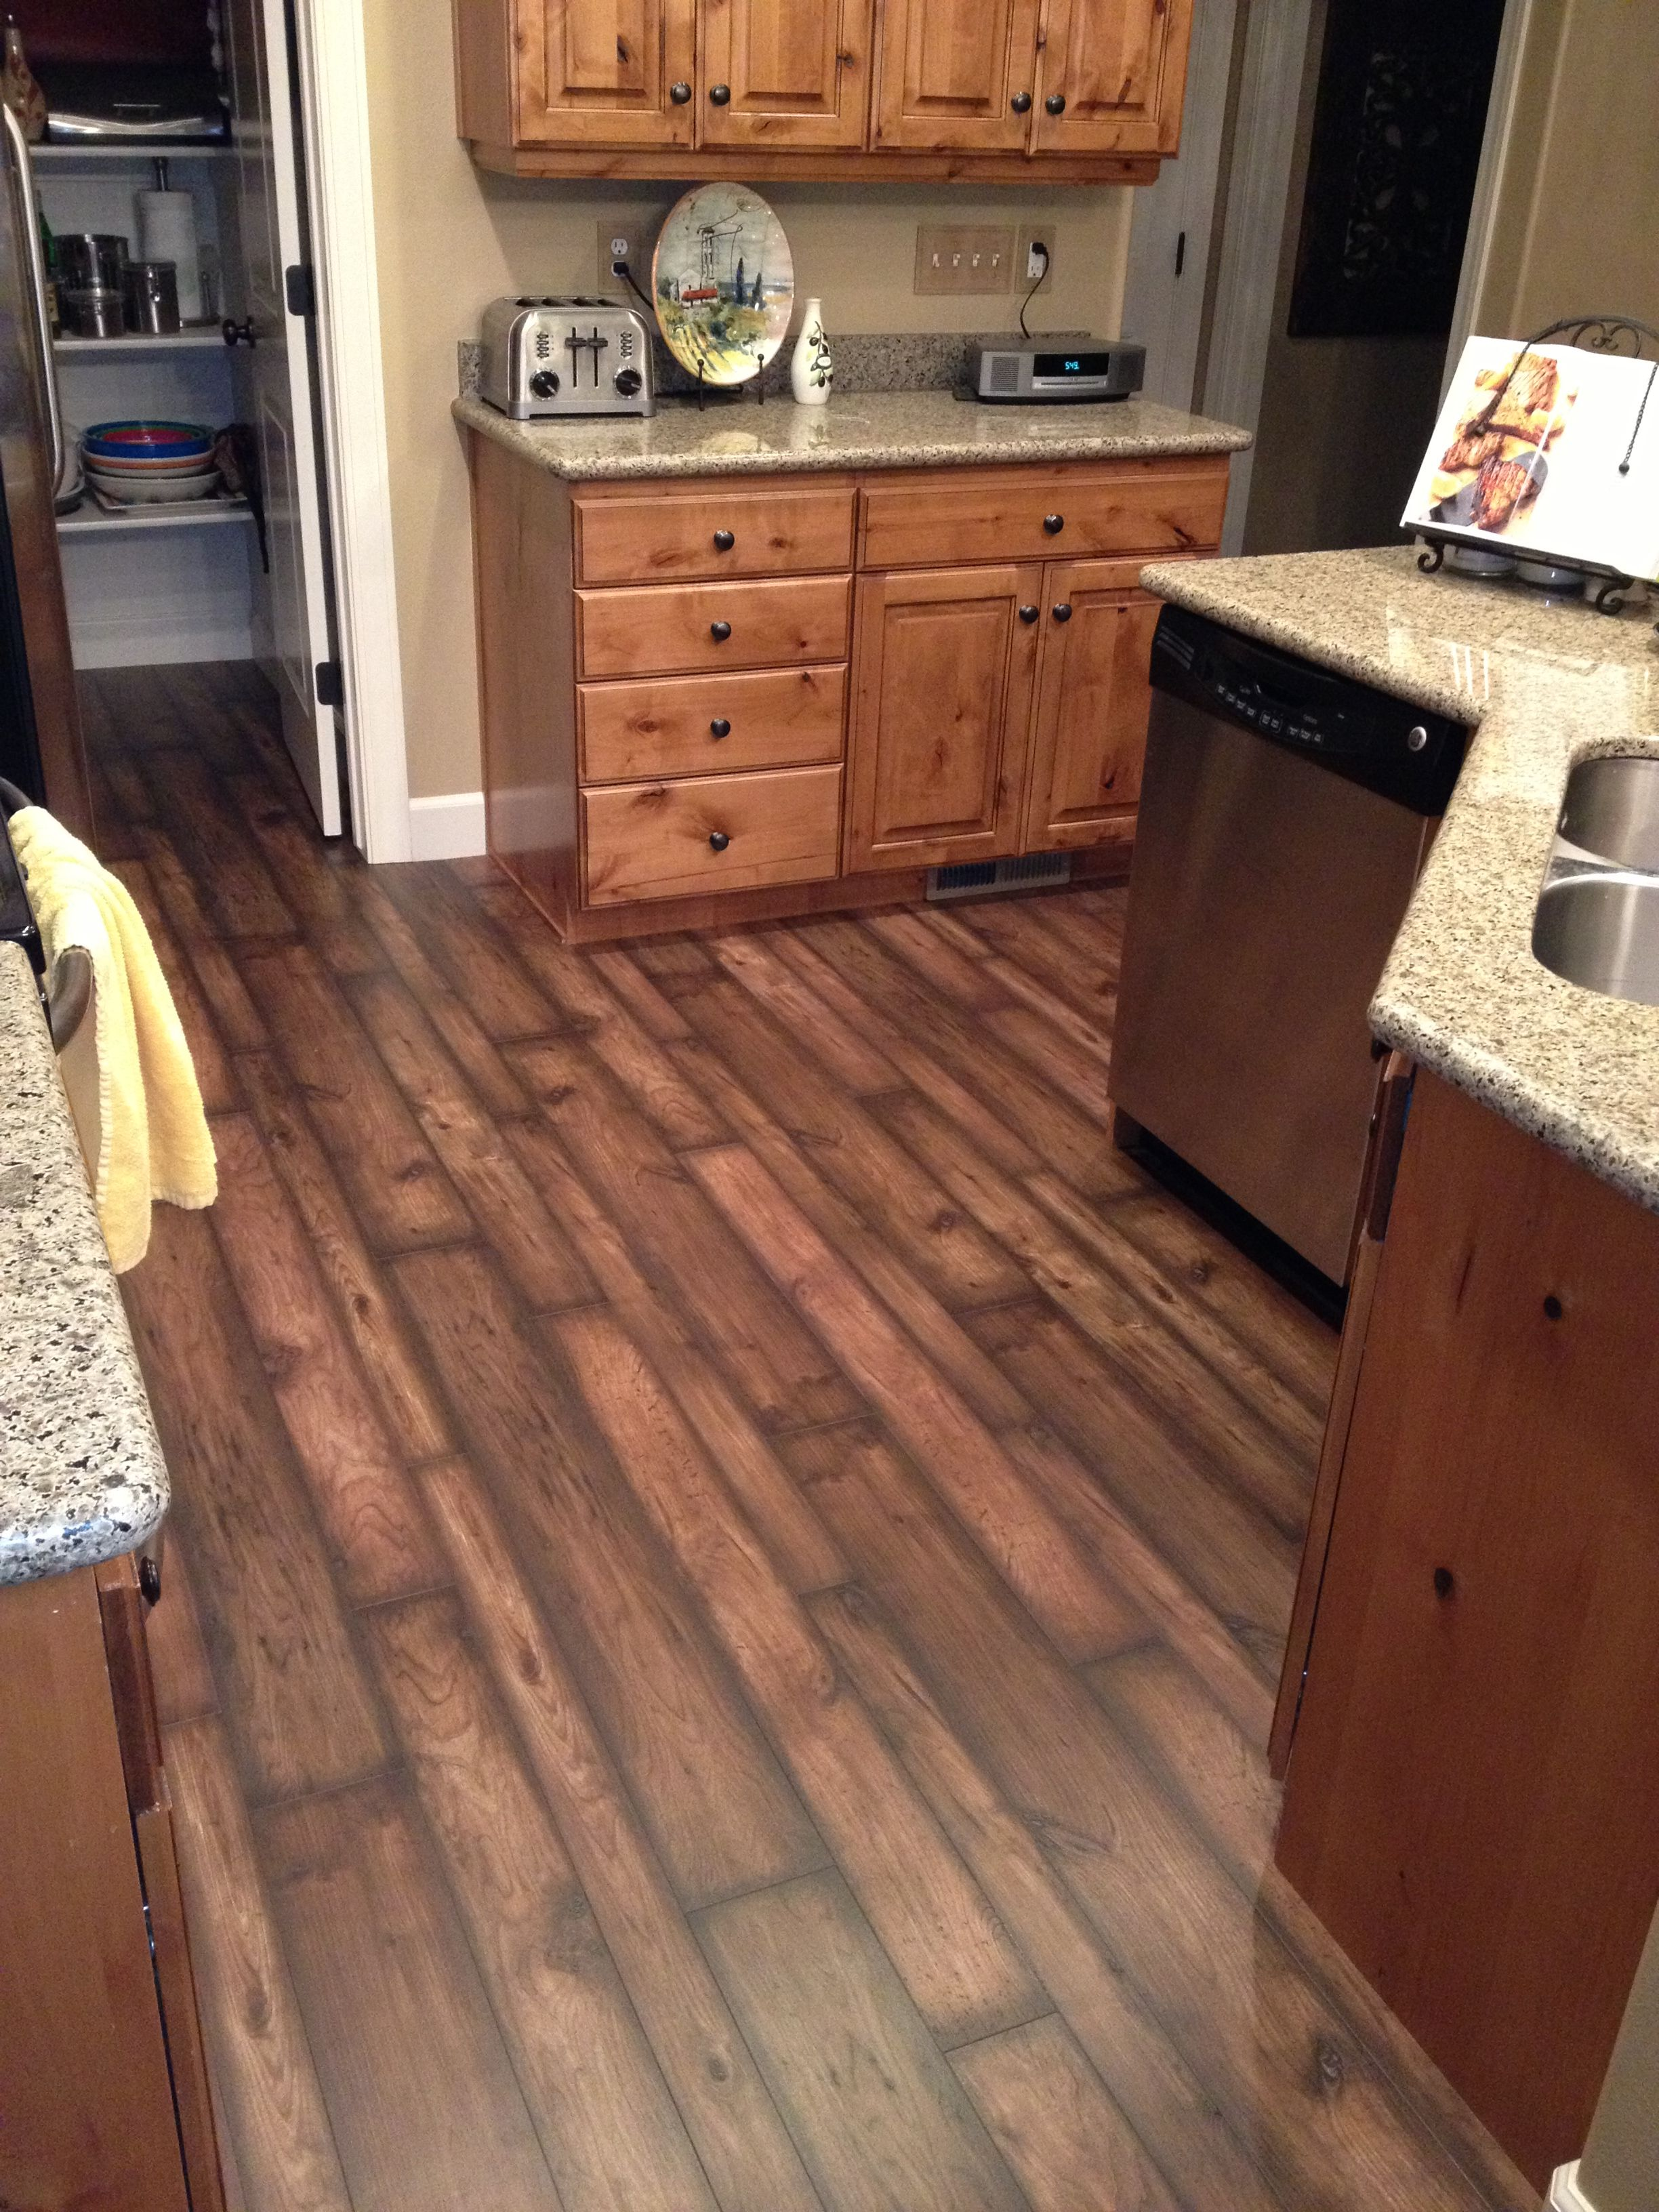 Mannington Adura LVT Real wood look wout any maintenance This